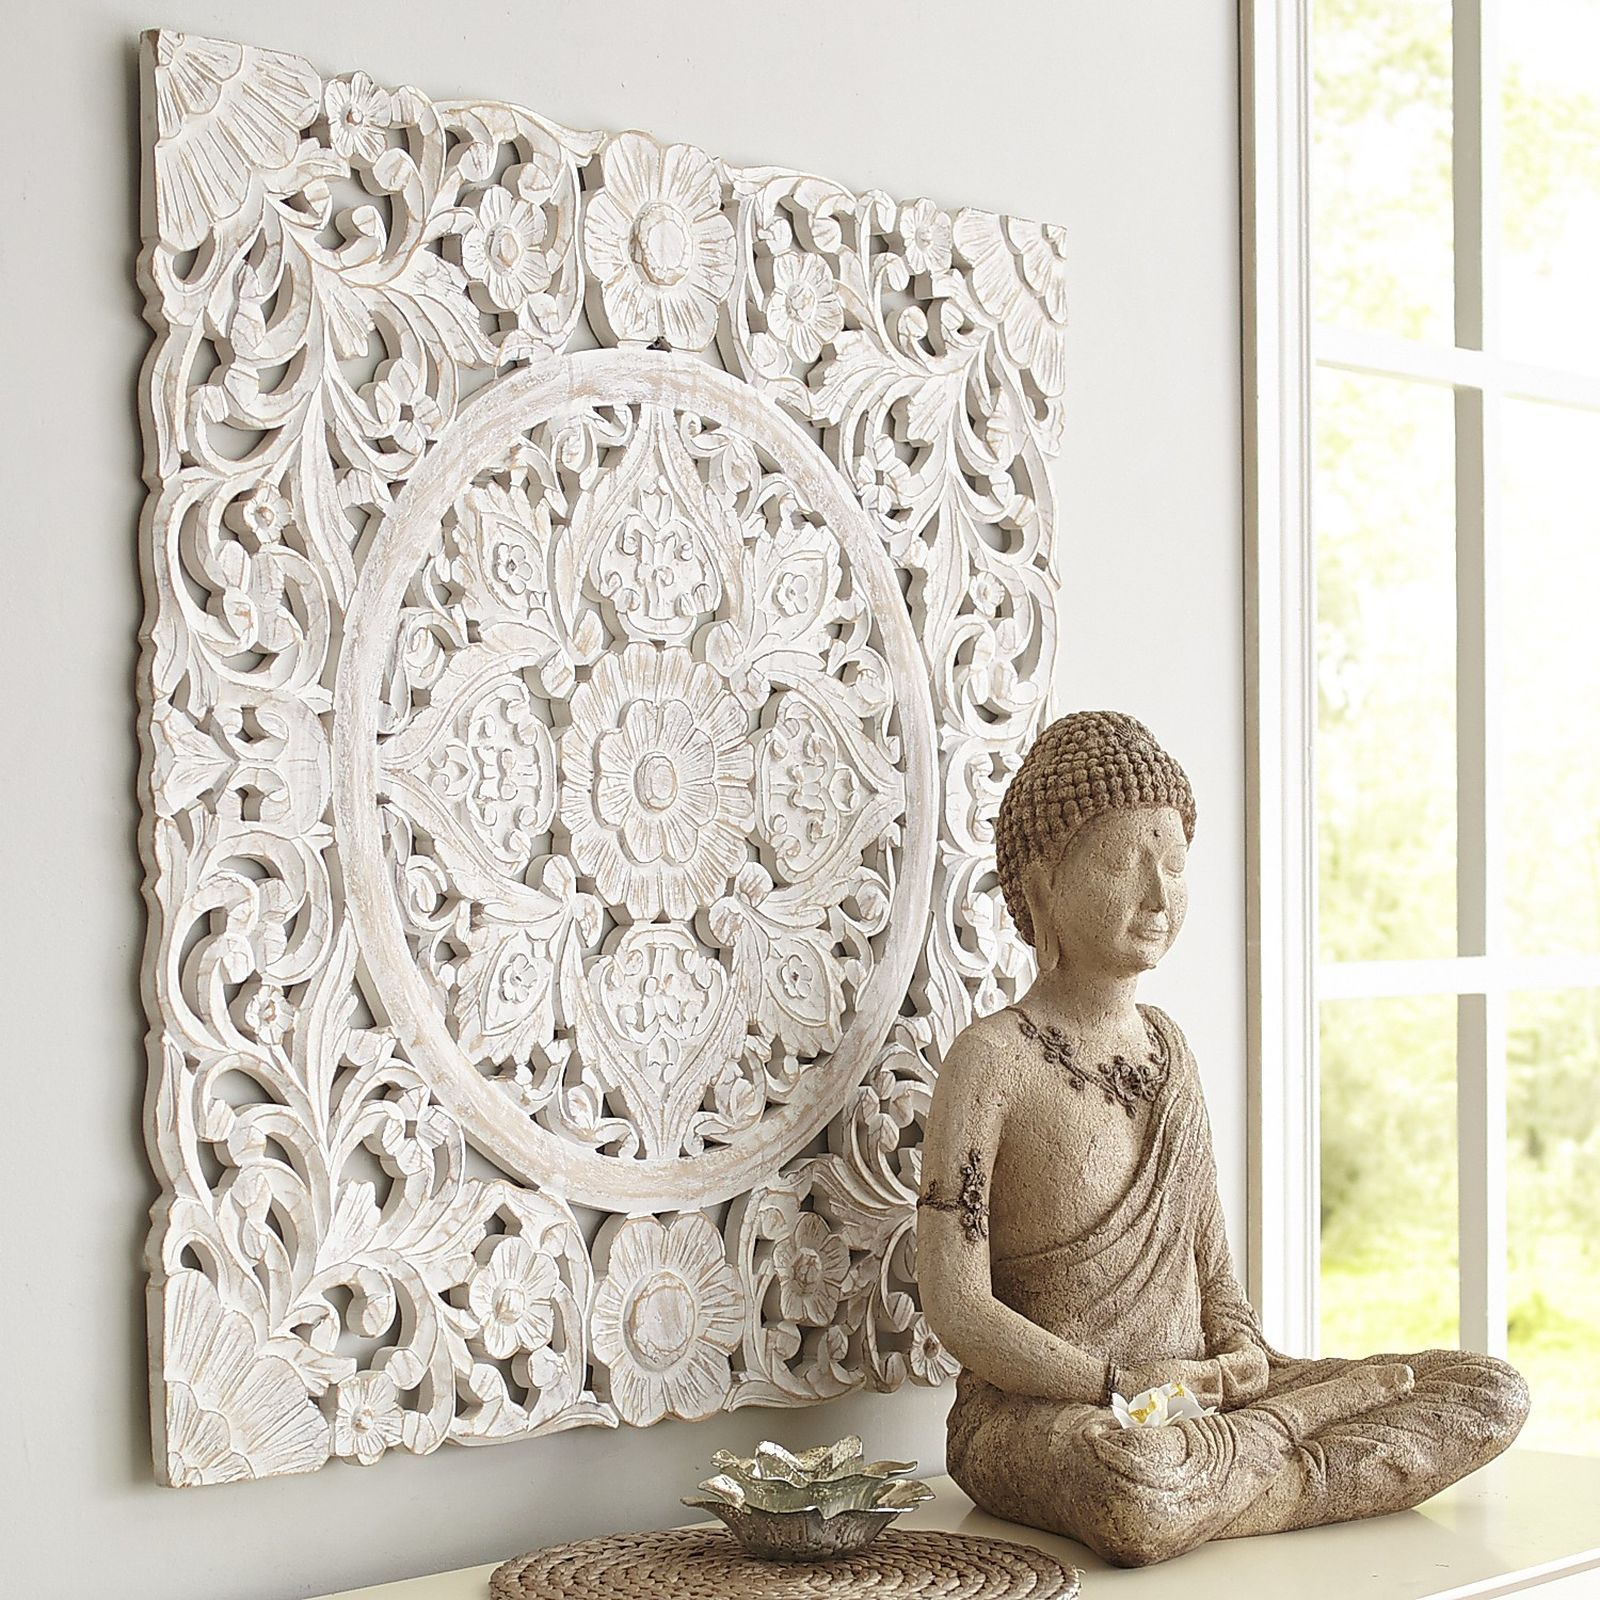 This Dramatic Wall Panel Finished Antique White Very Heavy Detailed And Dare Say